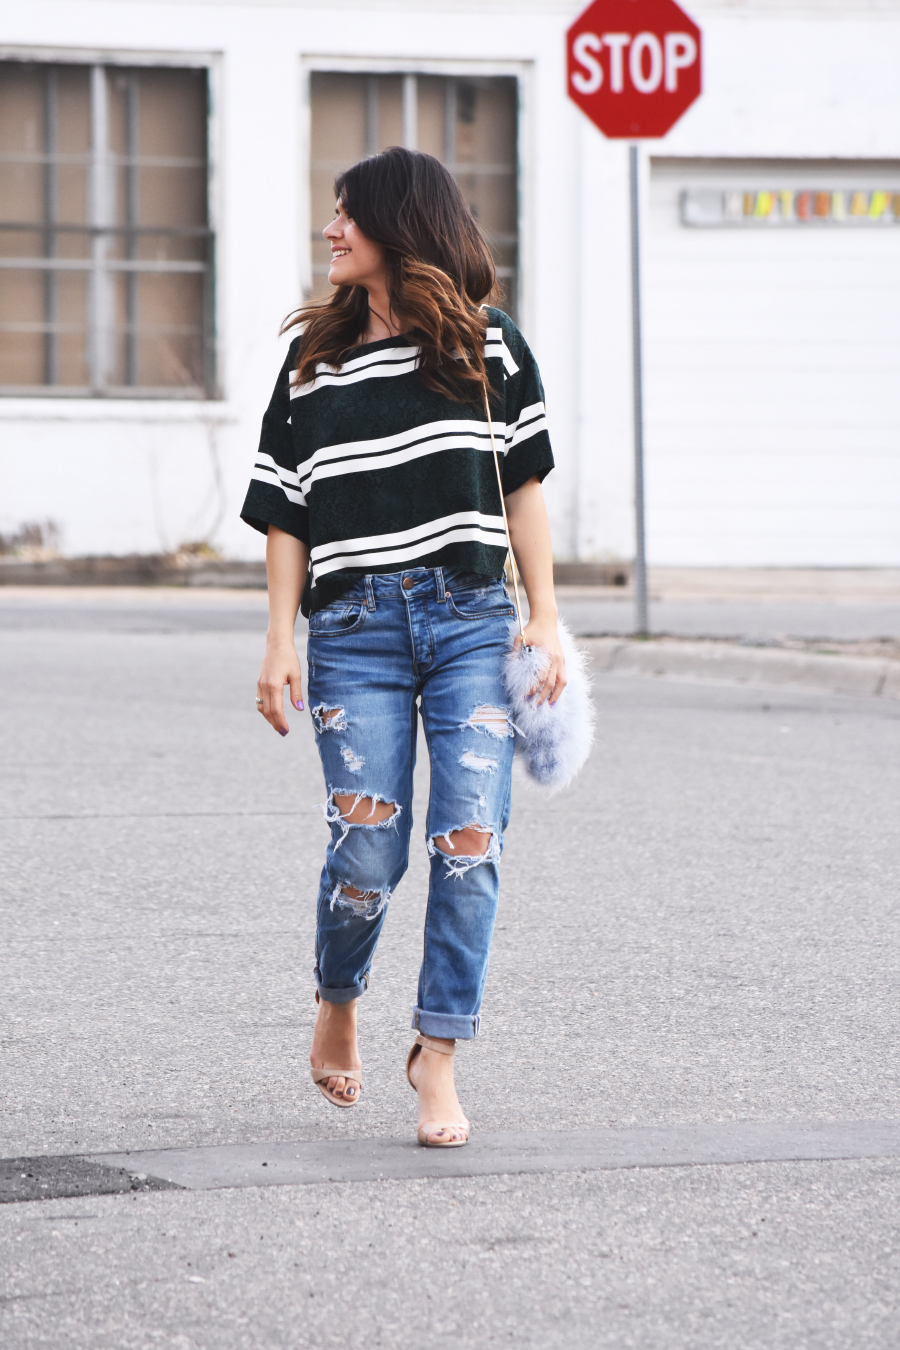 look of the day- jeans and crop top